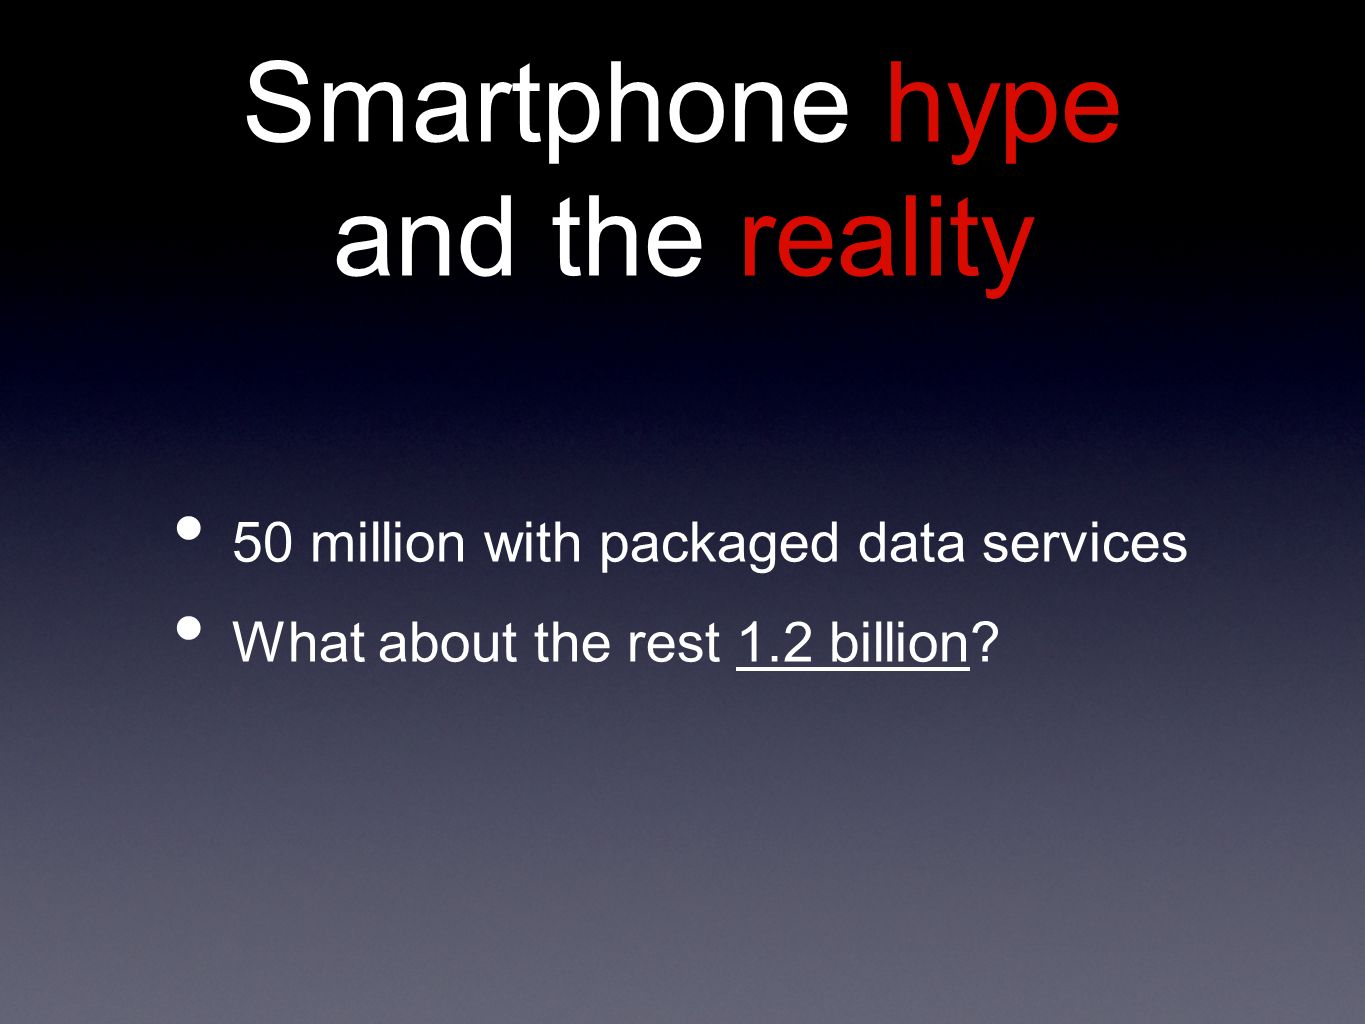 Smartphone hype and the reality 50 million with packaged data services What about the rest 1.2 billion